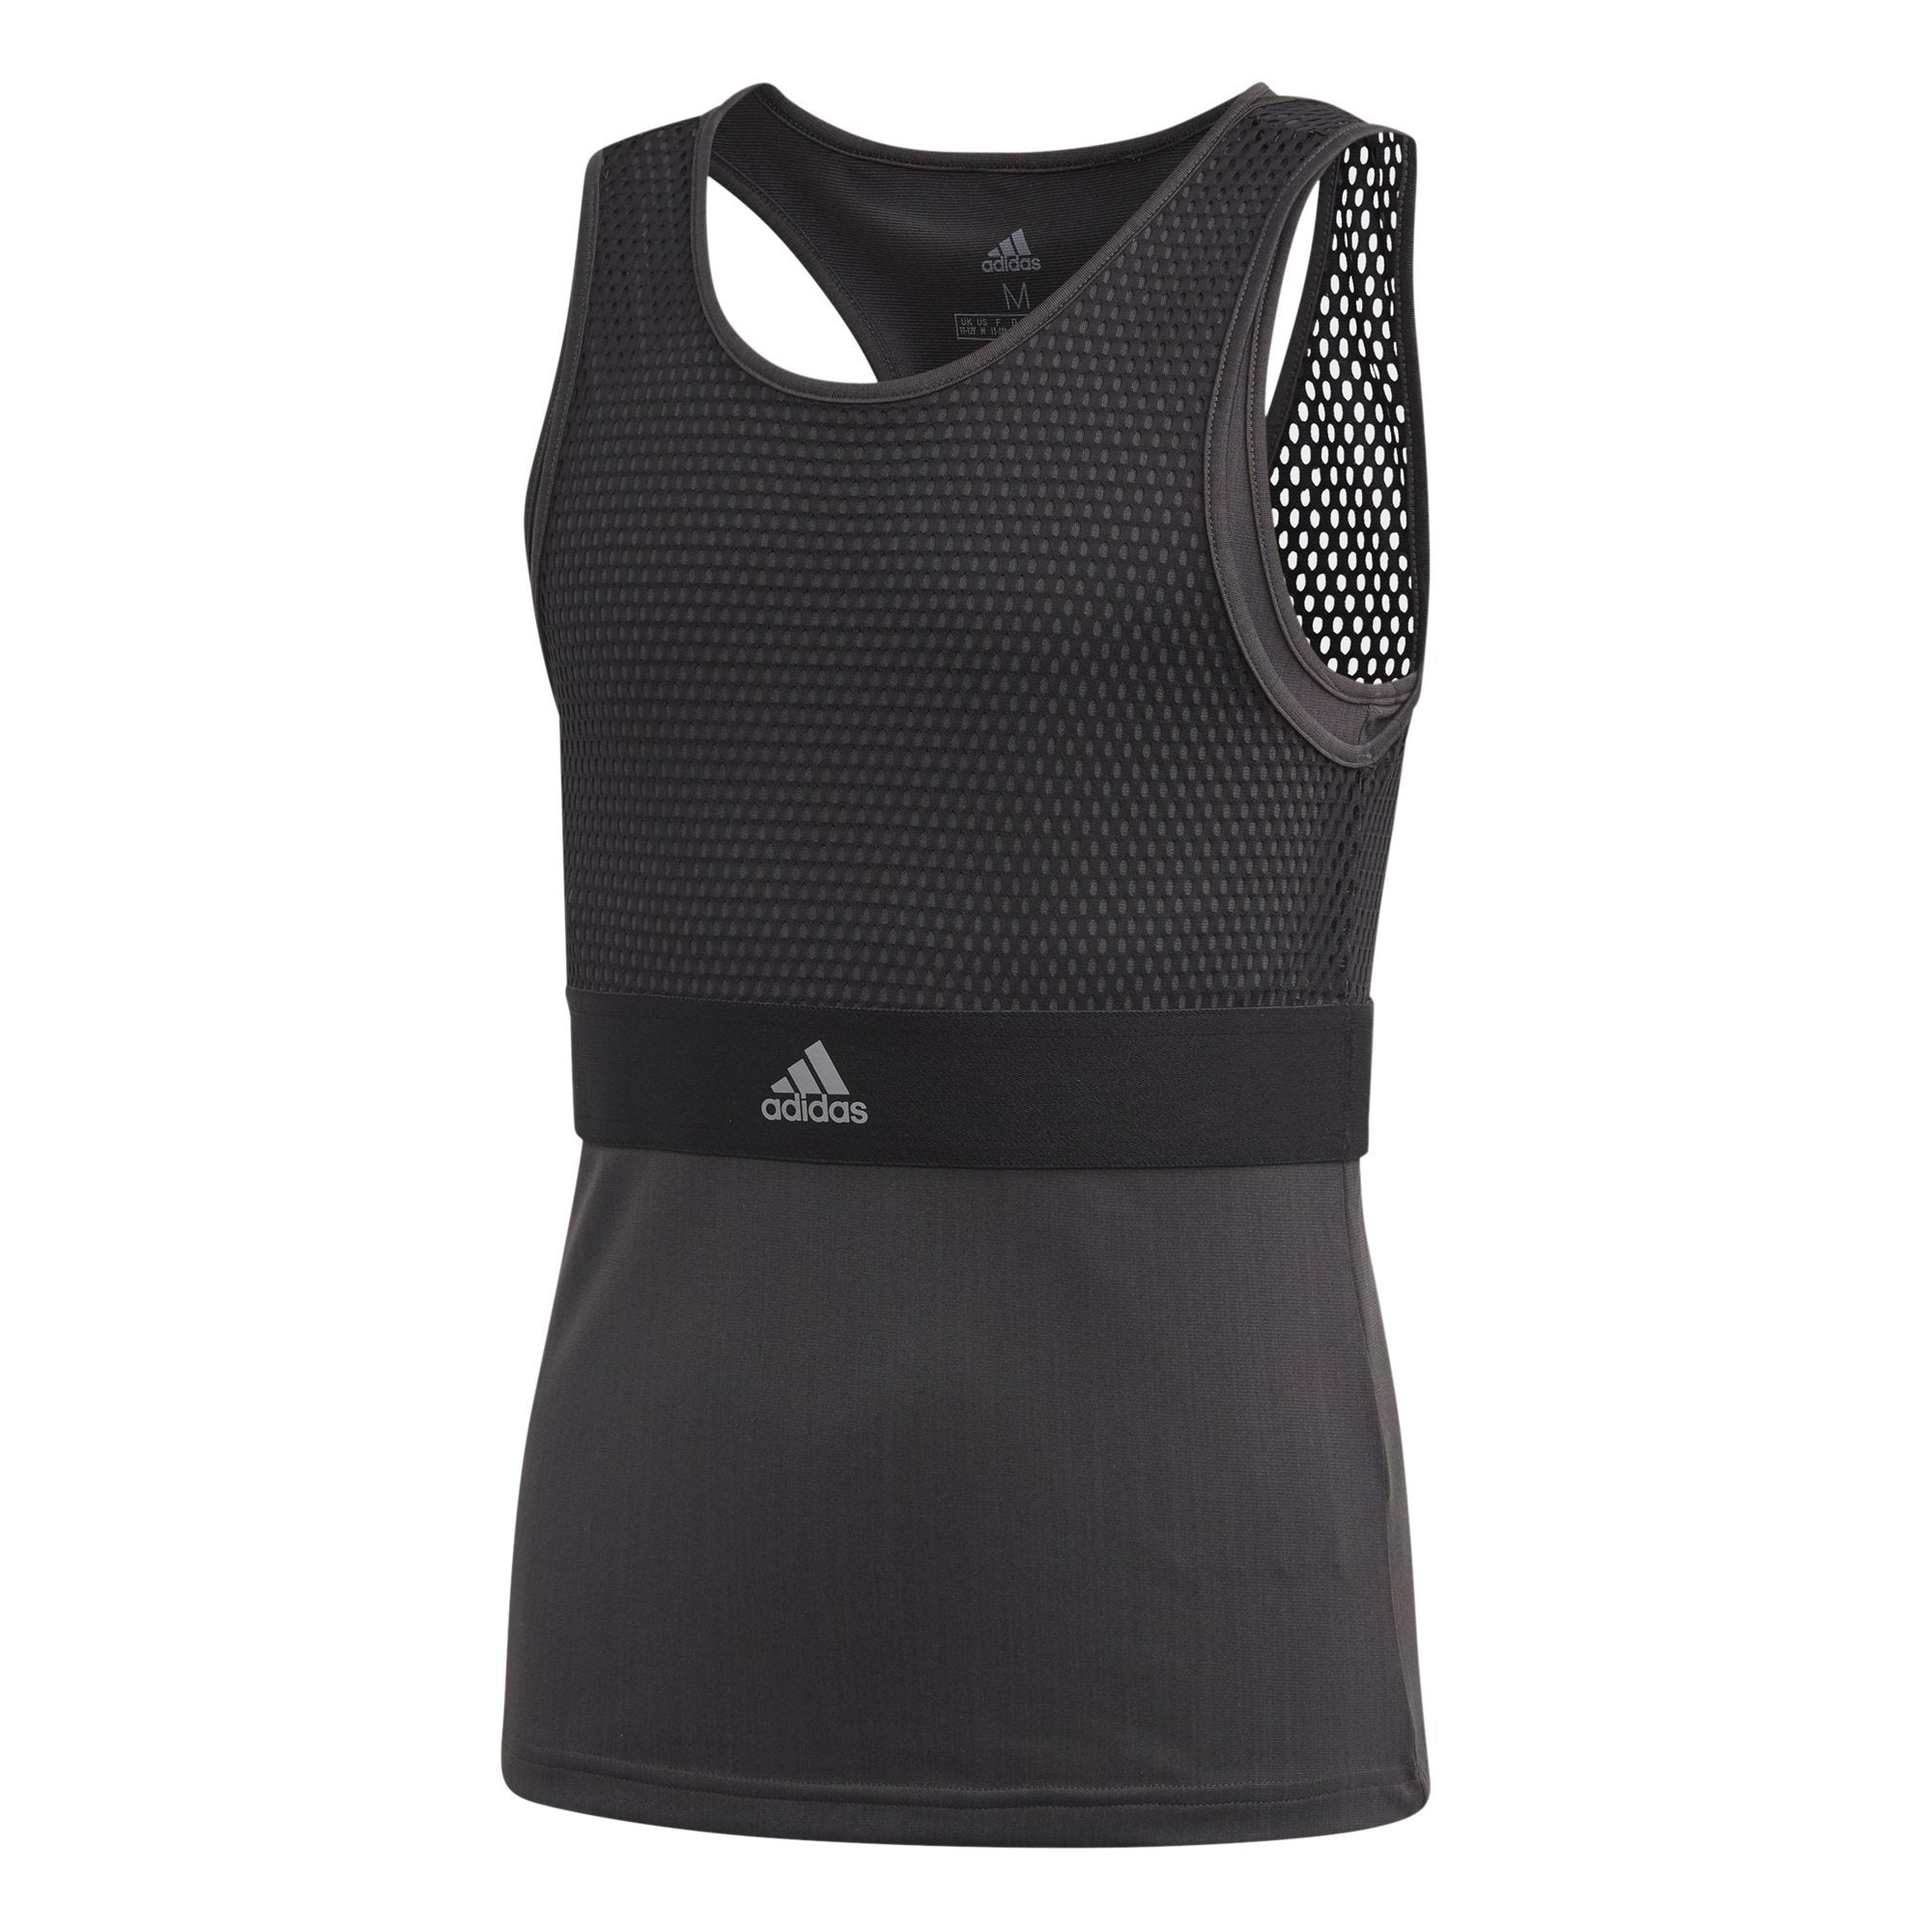 Adidas Girls New York Tank Top - black SP-APPARELTANK-GIRLS Adidas